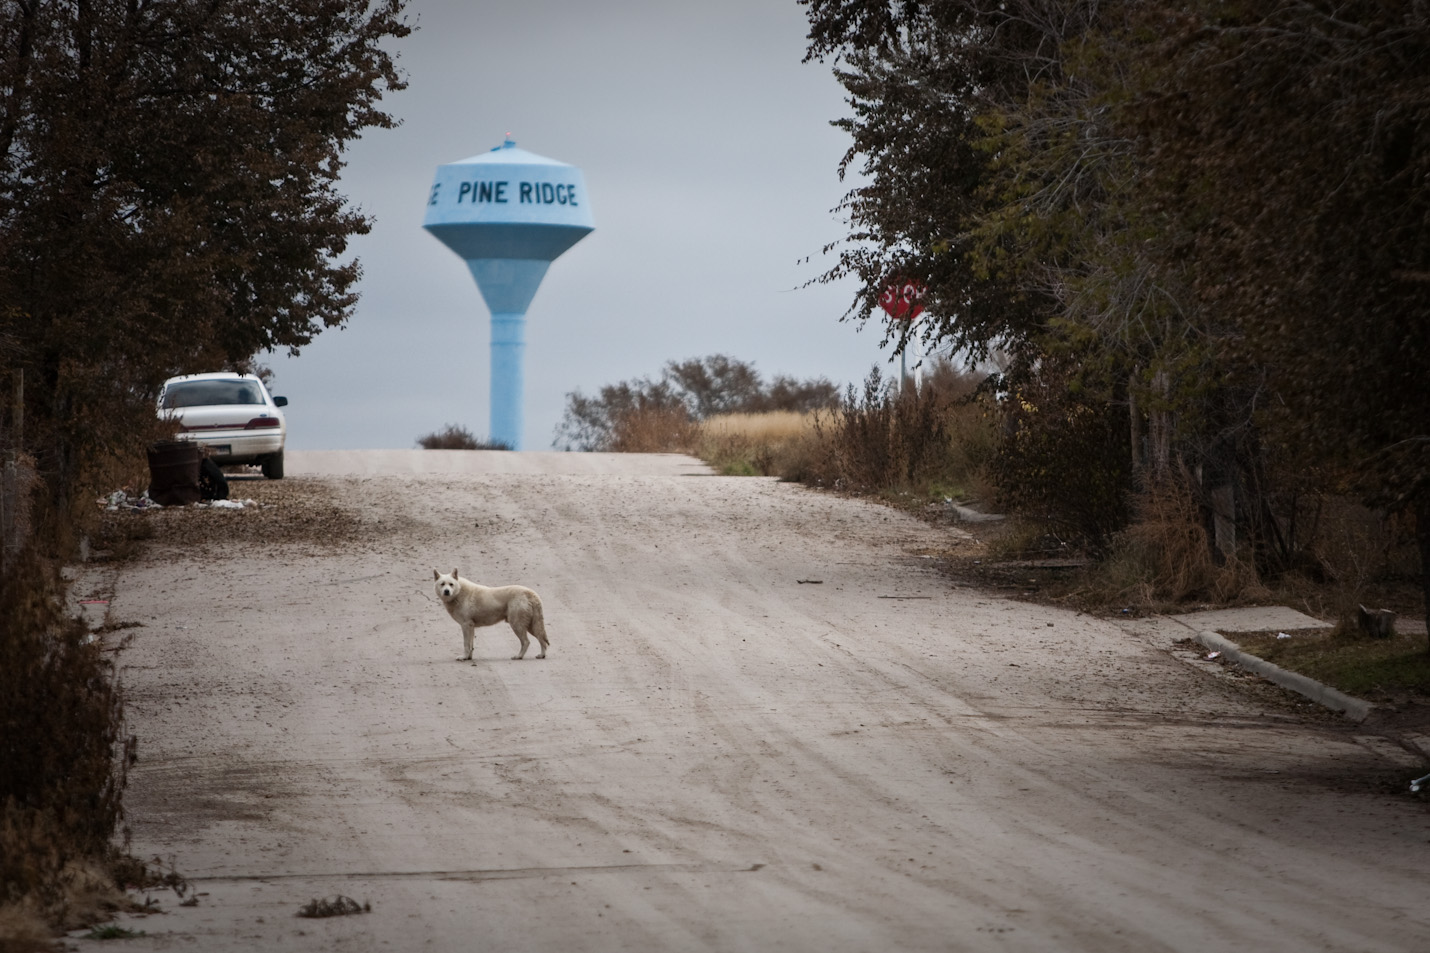 Dogs walk the streets of Pine Ridge, South Dakota on the Pine Ridge Indian Reservation during a cold morning on Thursday, October 22, 2009.  Many children carry bats or sticks to ward them off.